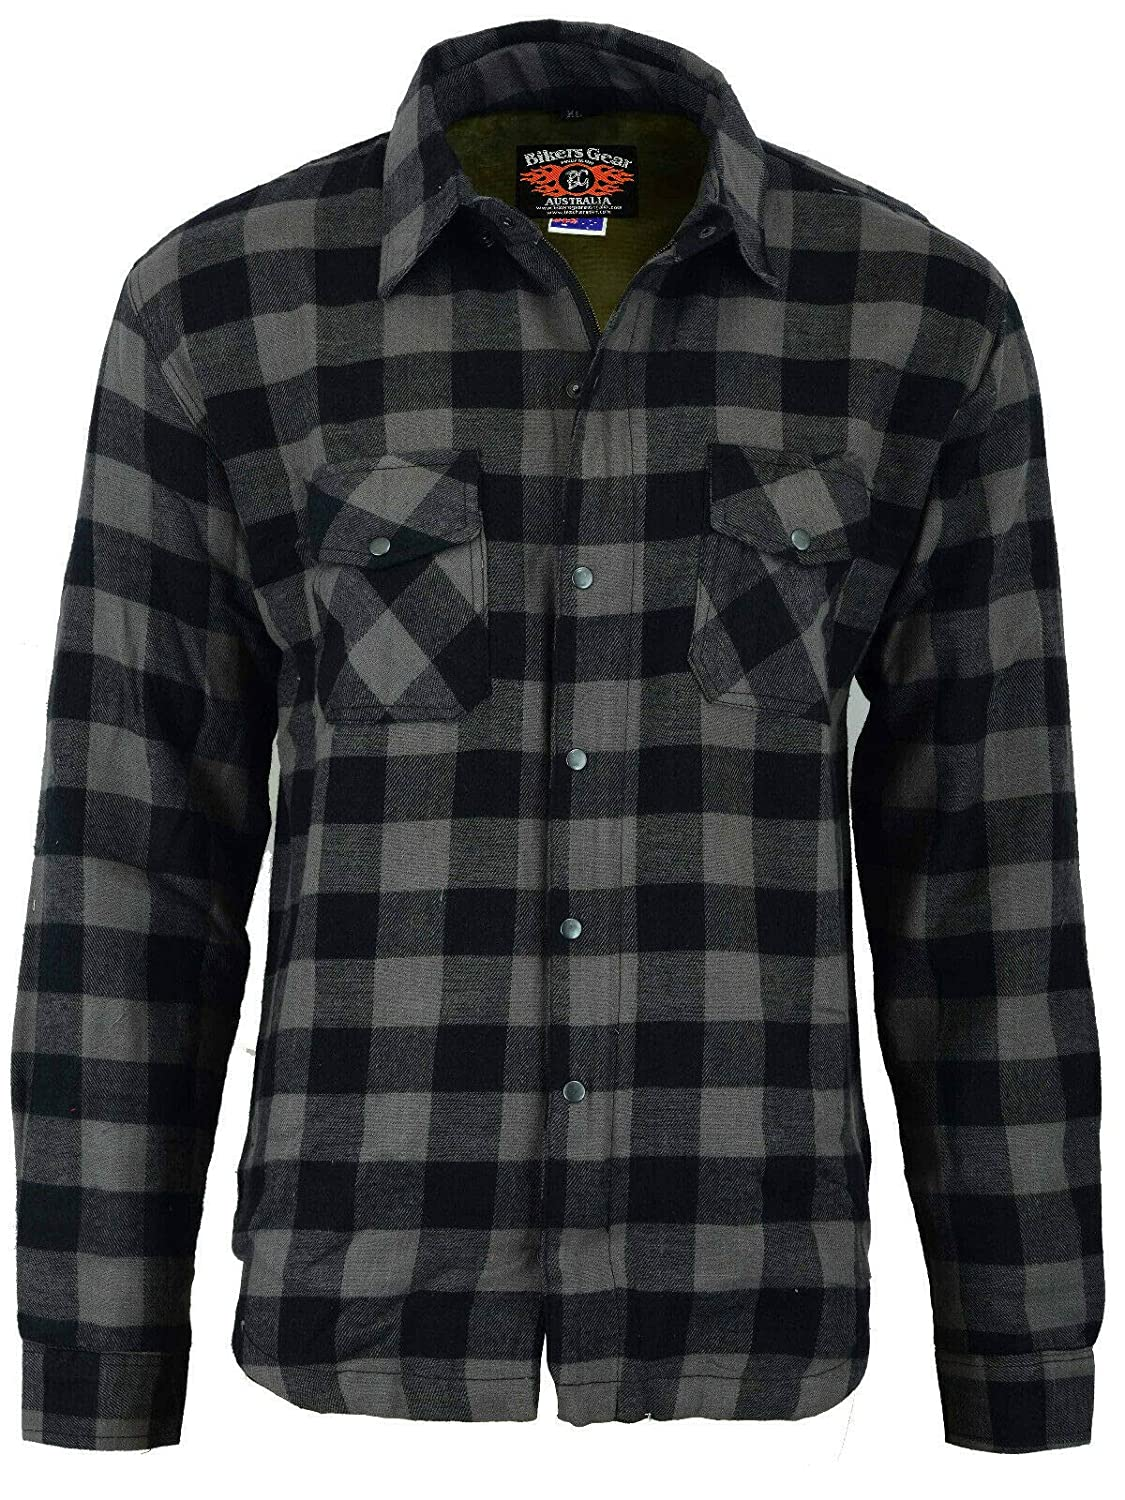 Bikers Gear Motorcycle Kevlar Aramid Lined Protective Flannel Shirt Stripe Black and Grey with CE 1621-1 Removable Armour /… L